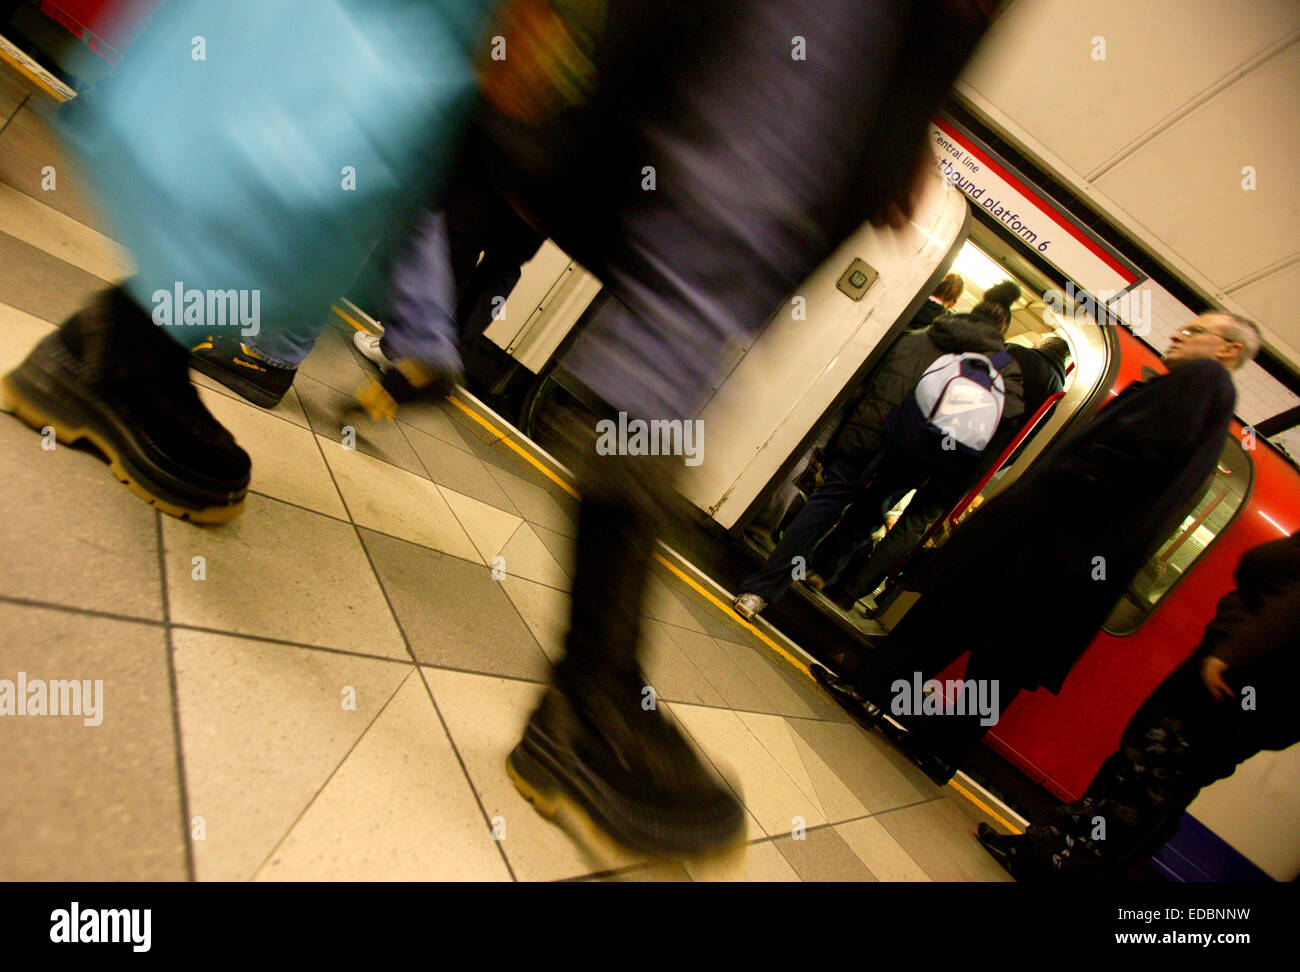 Passengers boarding a London Underground central line train at Bank station. - Stock Image